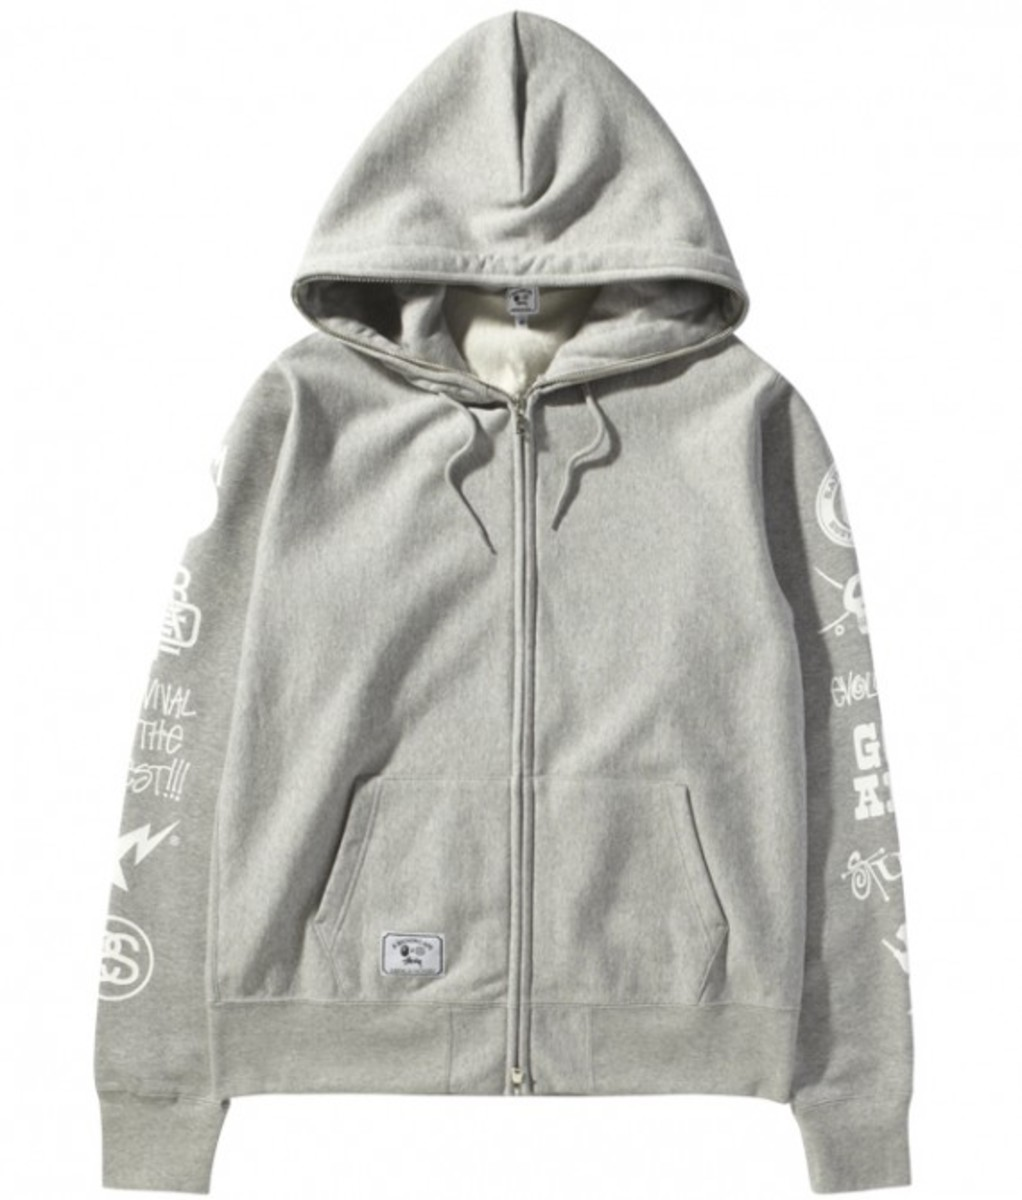 stussy-bape-survival-of-the-fittest-2-22